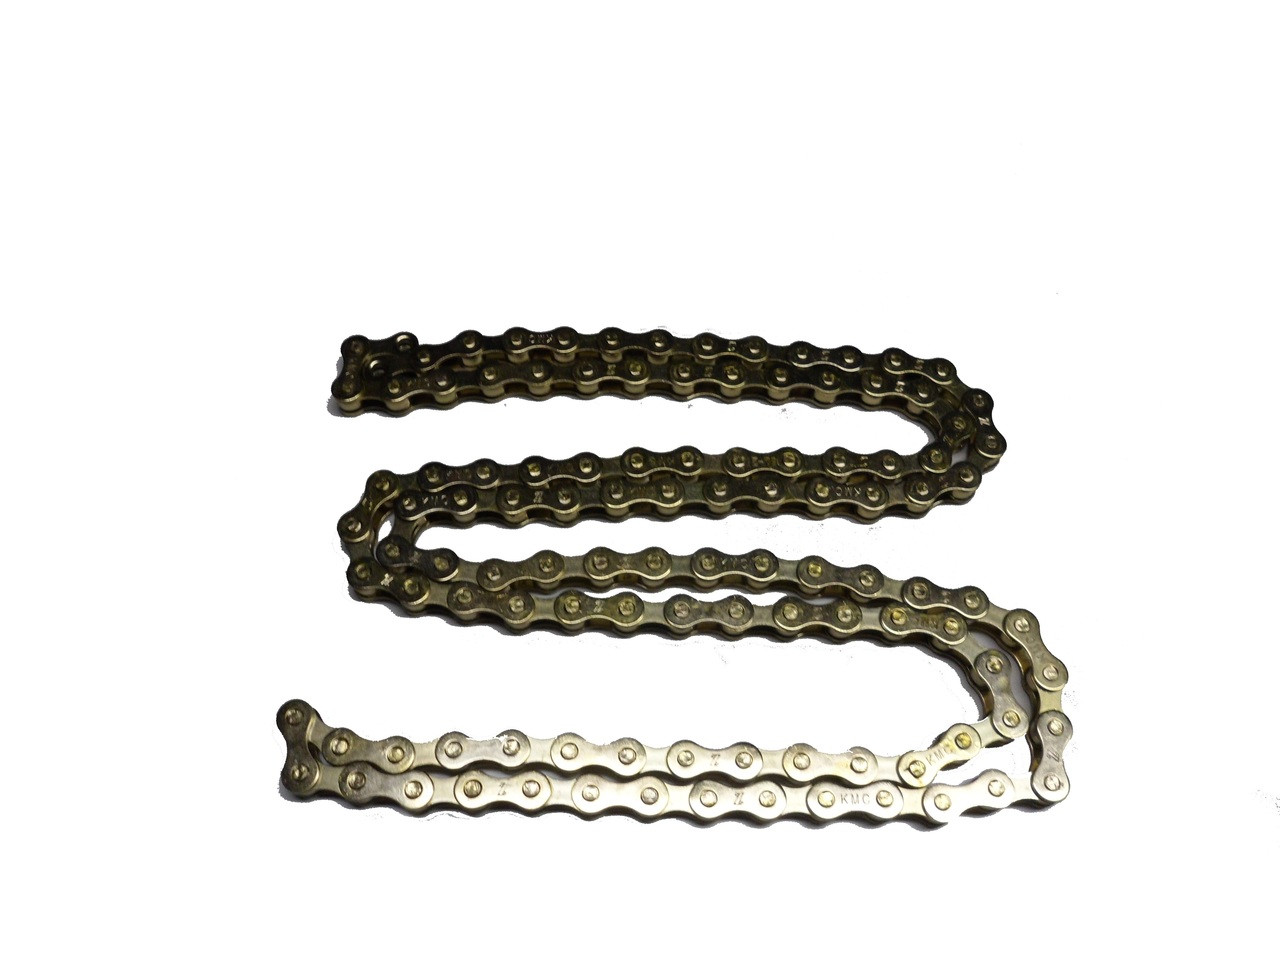 KMC Z410 1/8 Inch Bicycle Chain, 112 Links - Gold dust